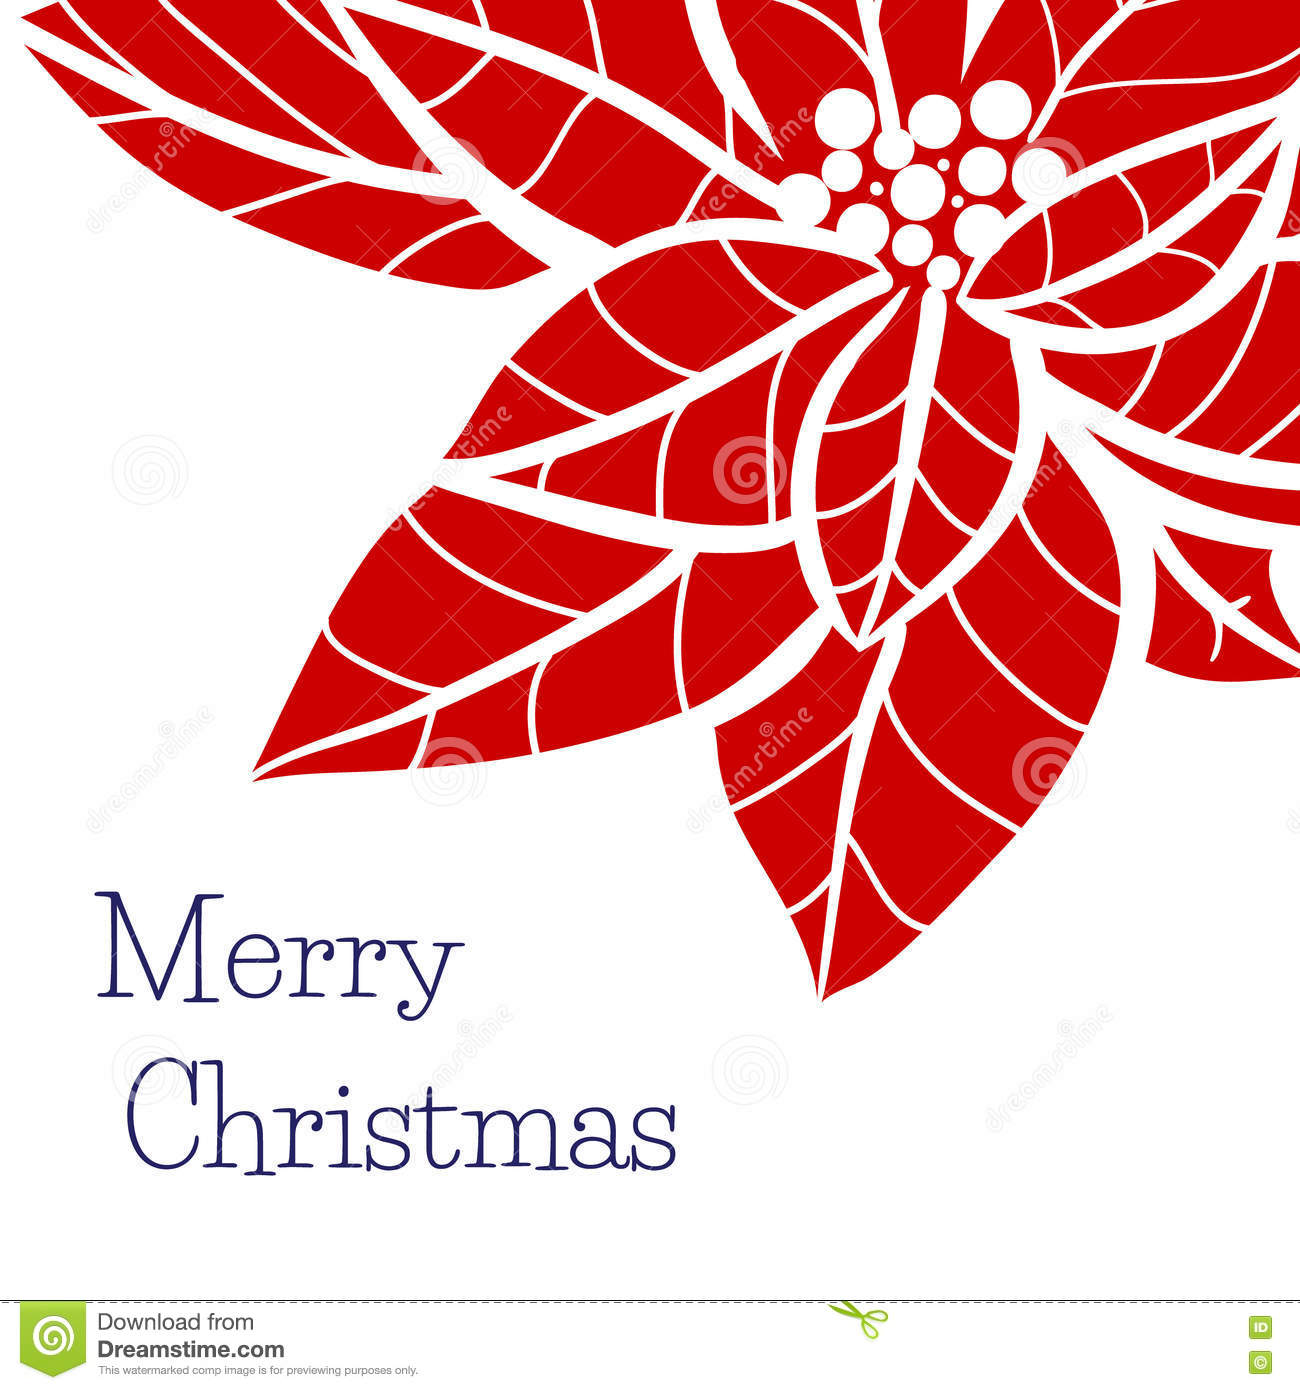 christmas and new year greeting card template with hand